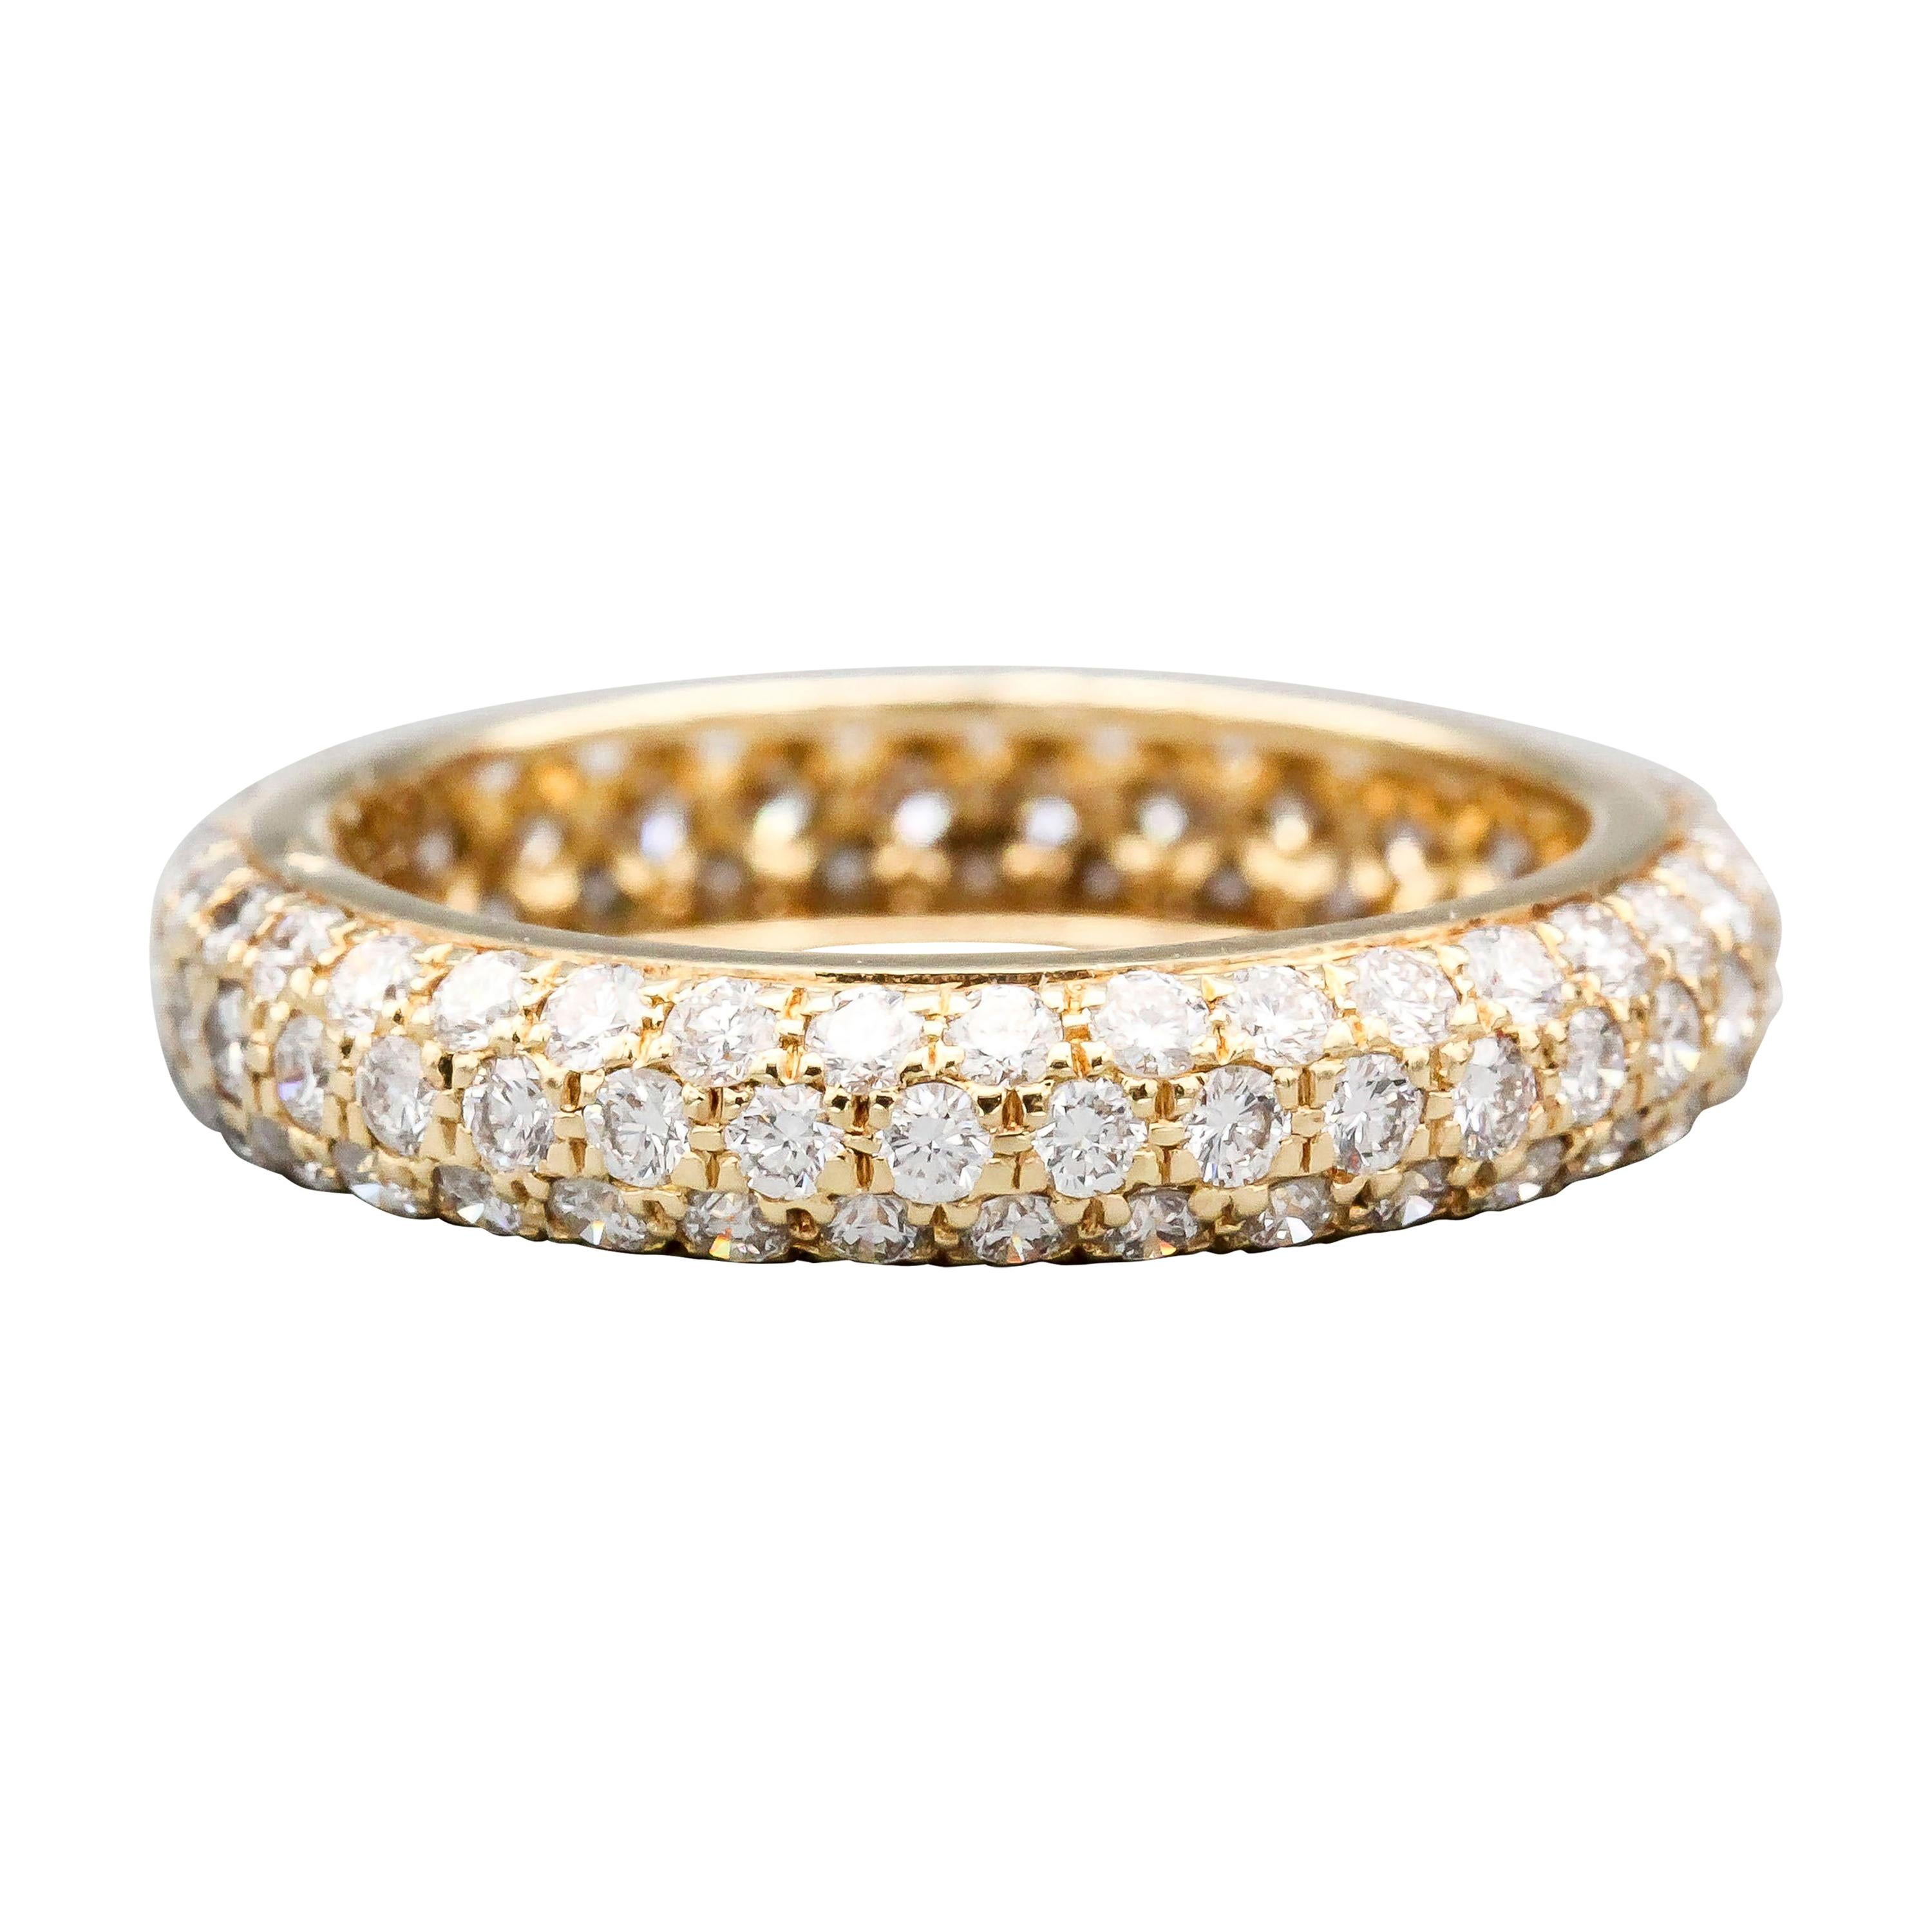 Cartier Three-Row Pave Diamond and 18k Gold Band Ring